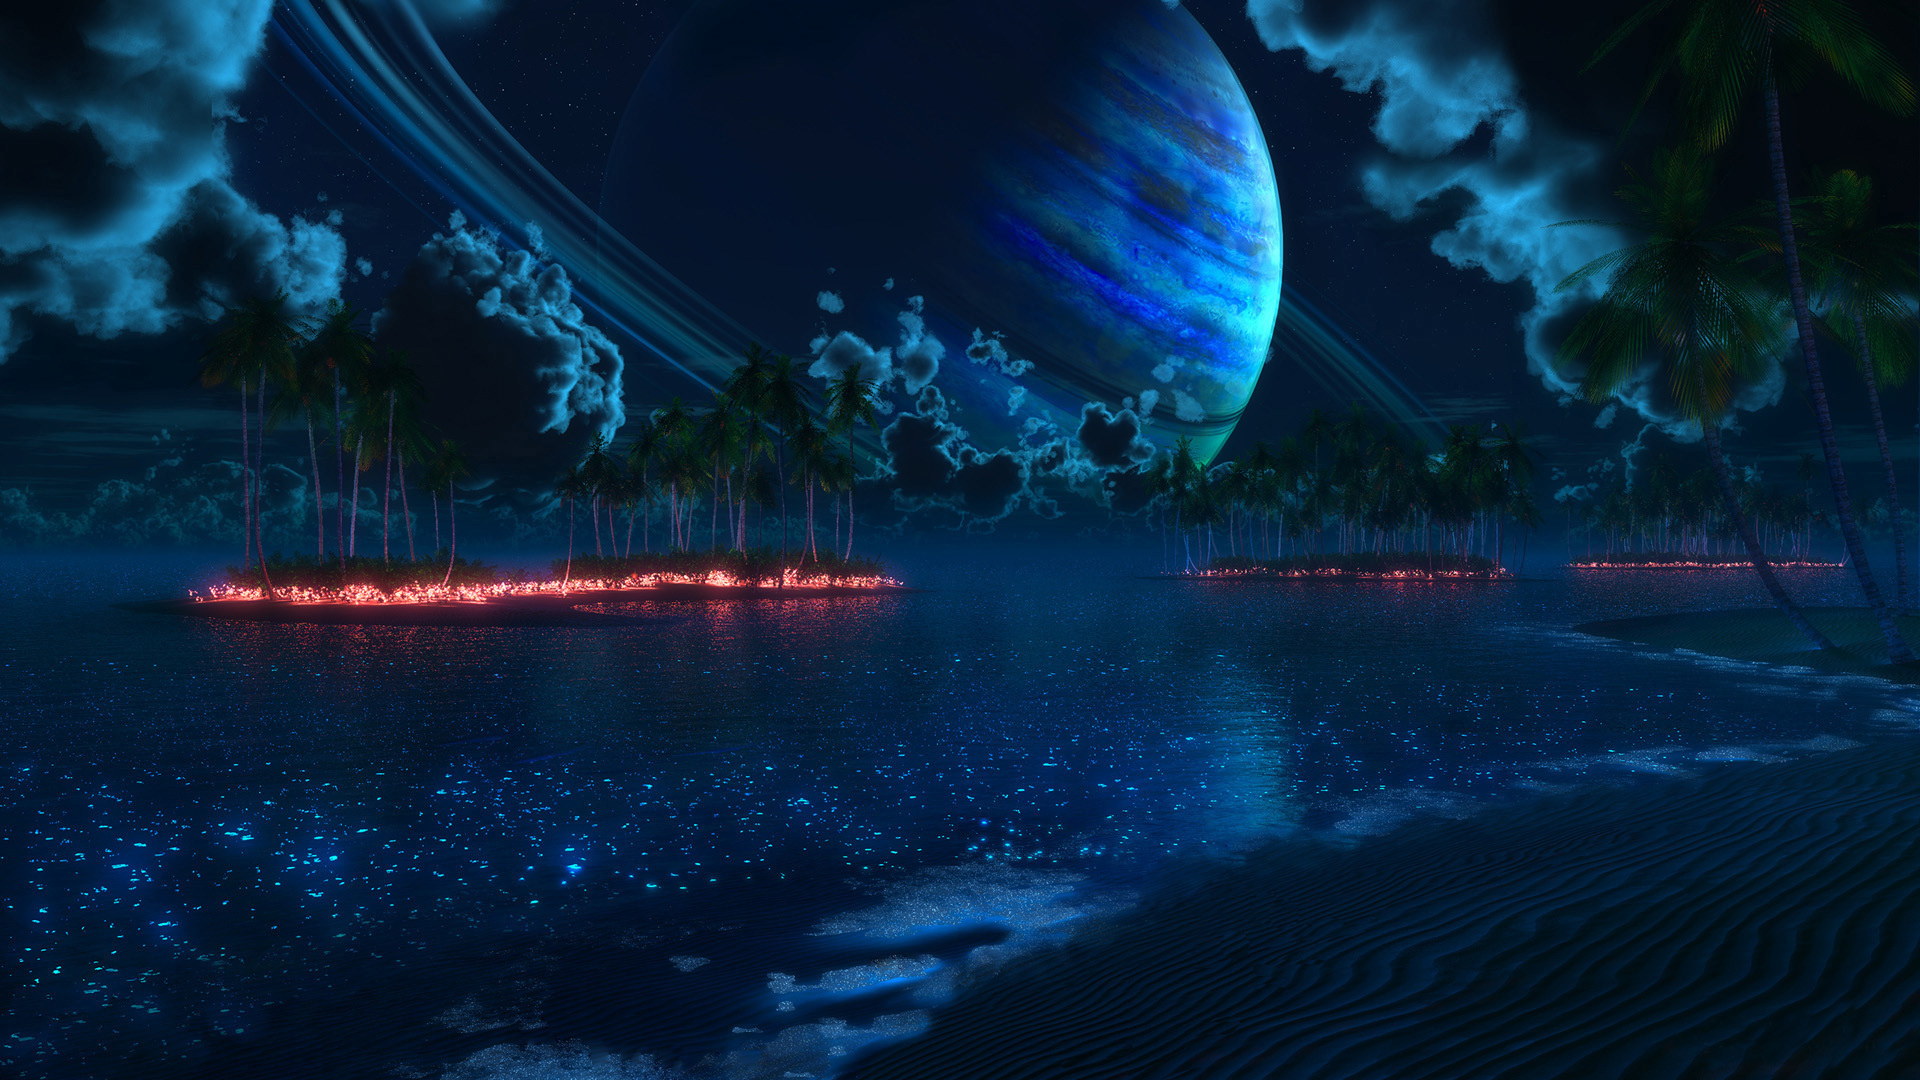 Planet Rise HD Wallpaper Background Image 1920x1080